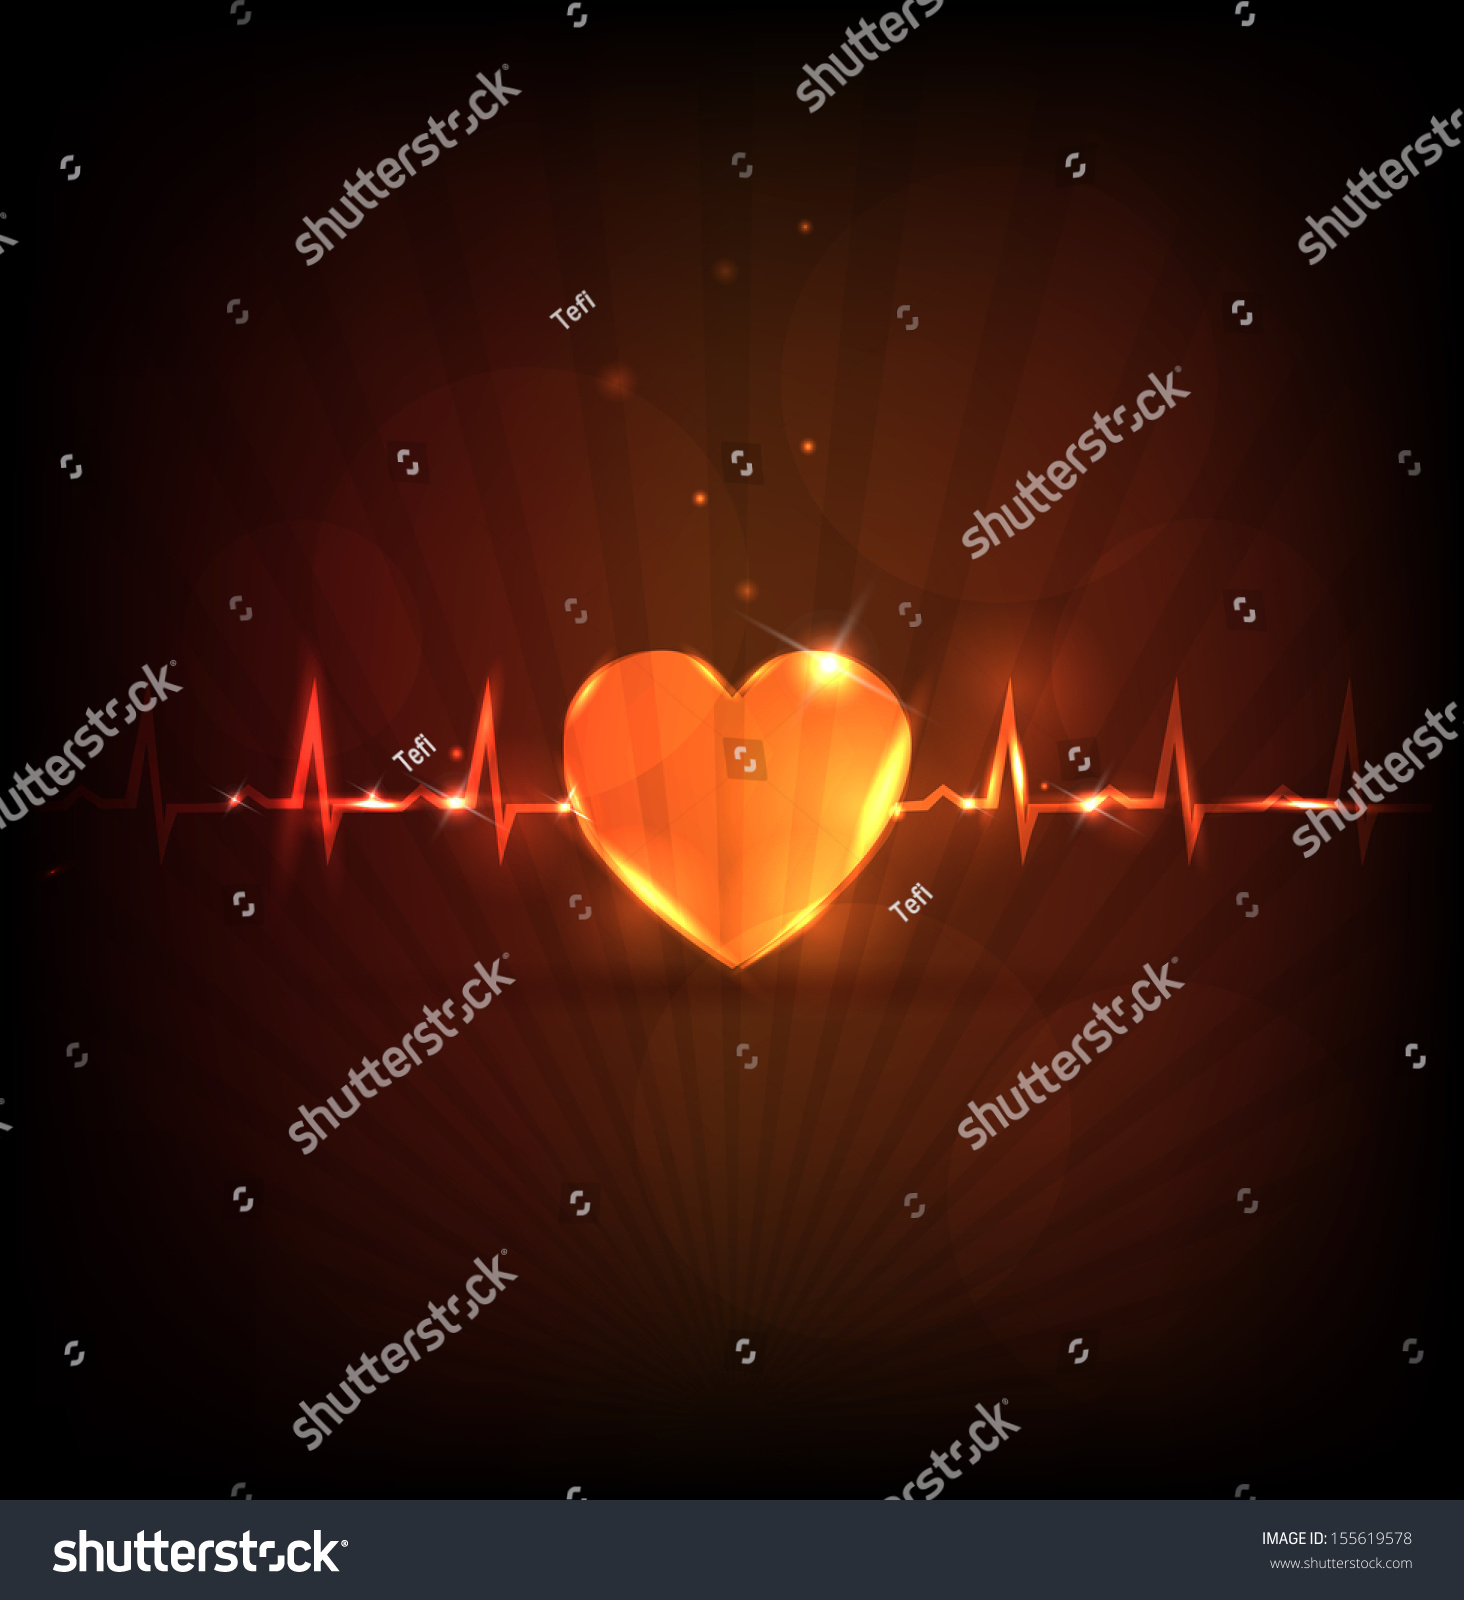 abstract heart wallpaper normal heart beat stock illustration